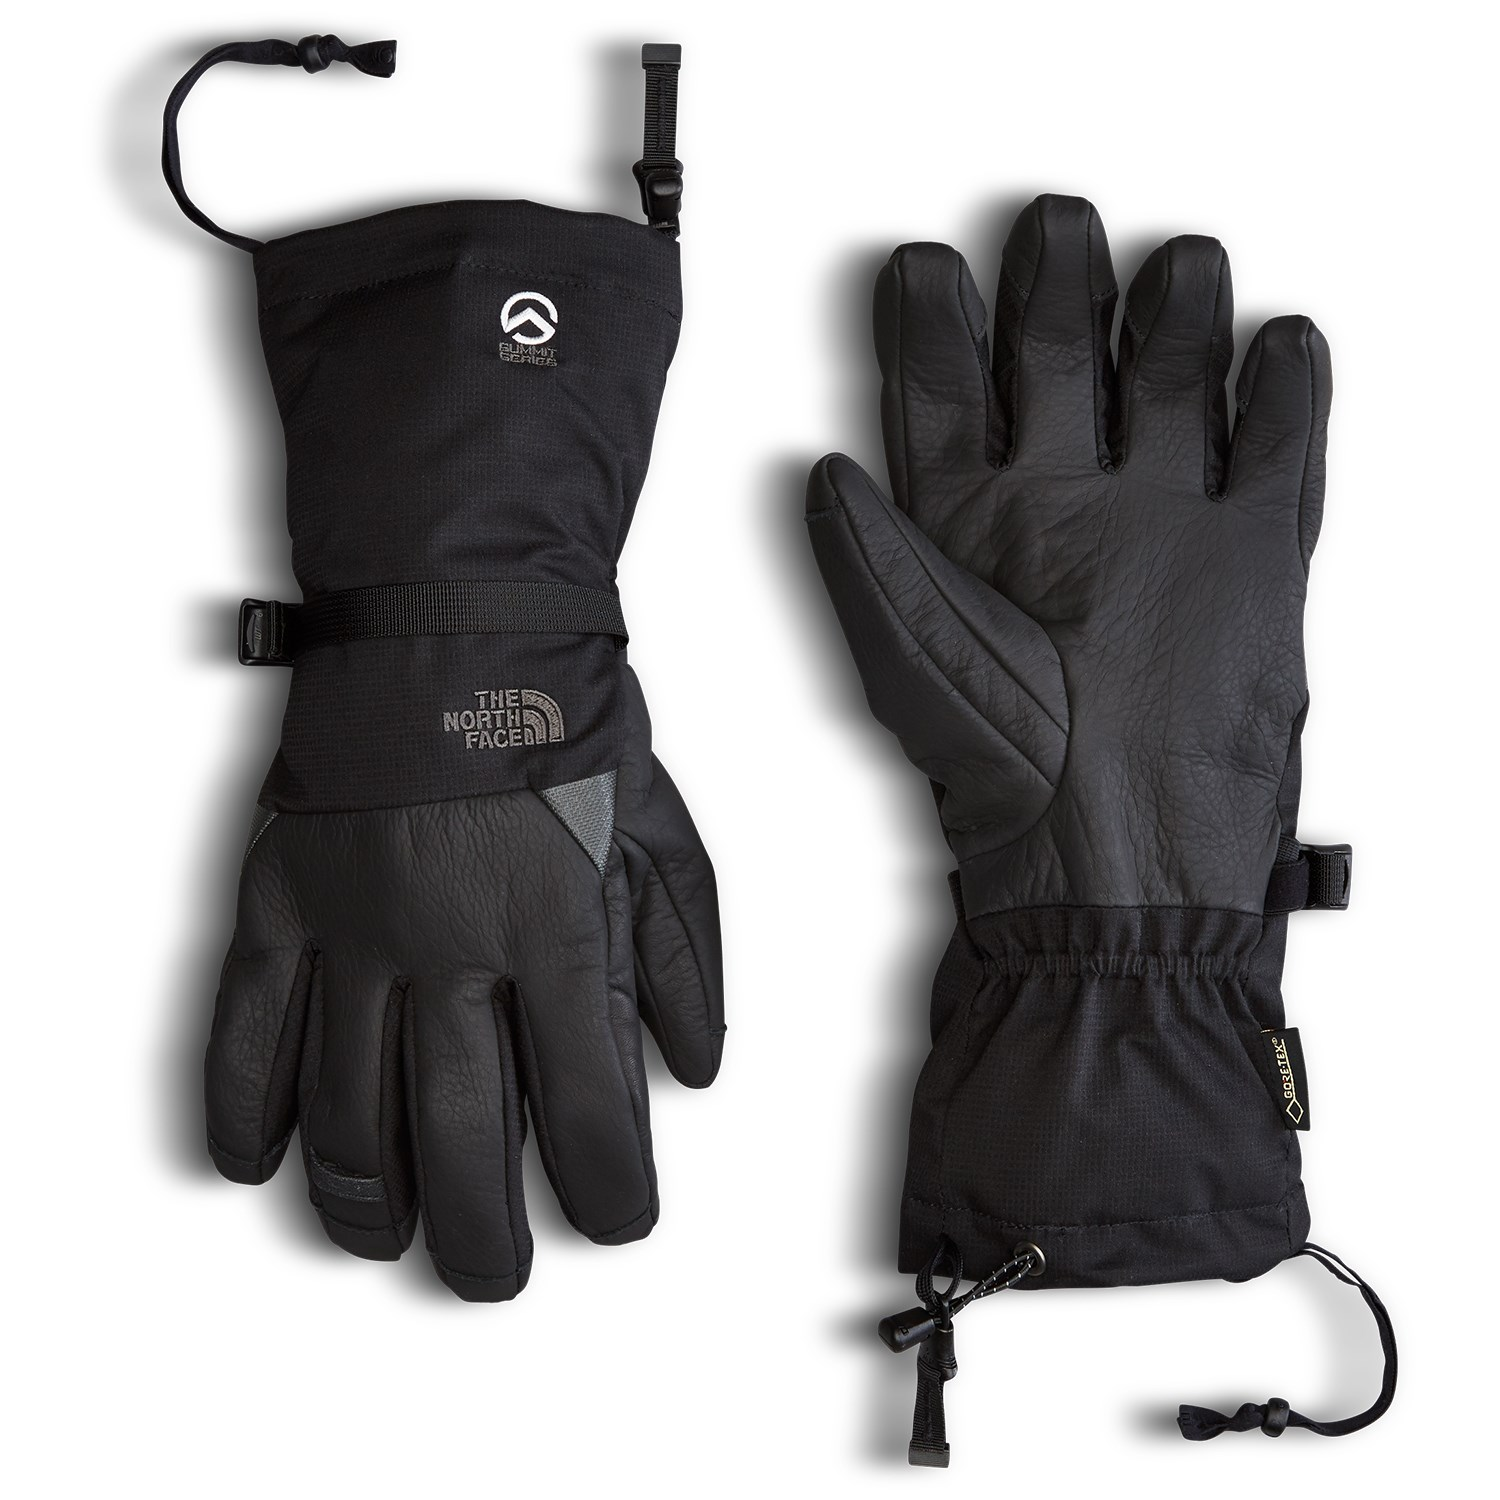 9da3199a7 The North Face Patrol Long Gauntlet Gloves